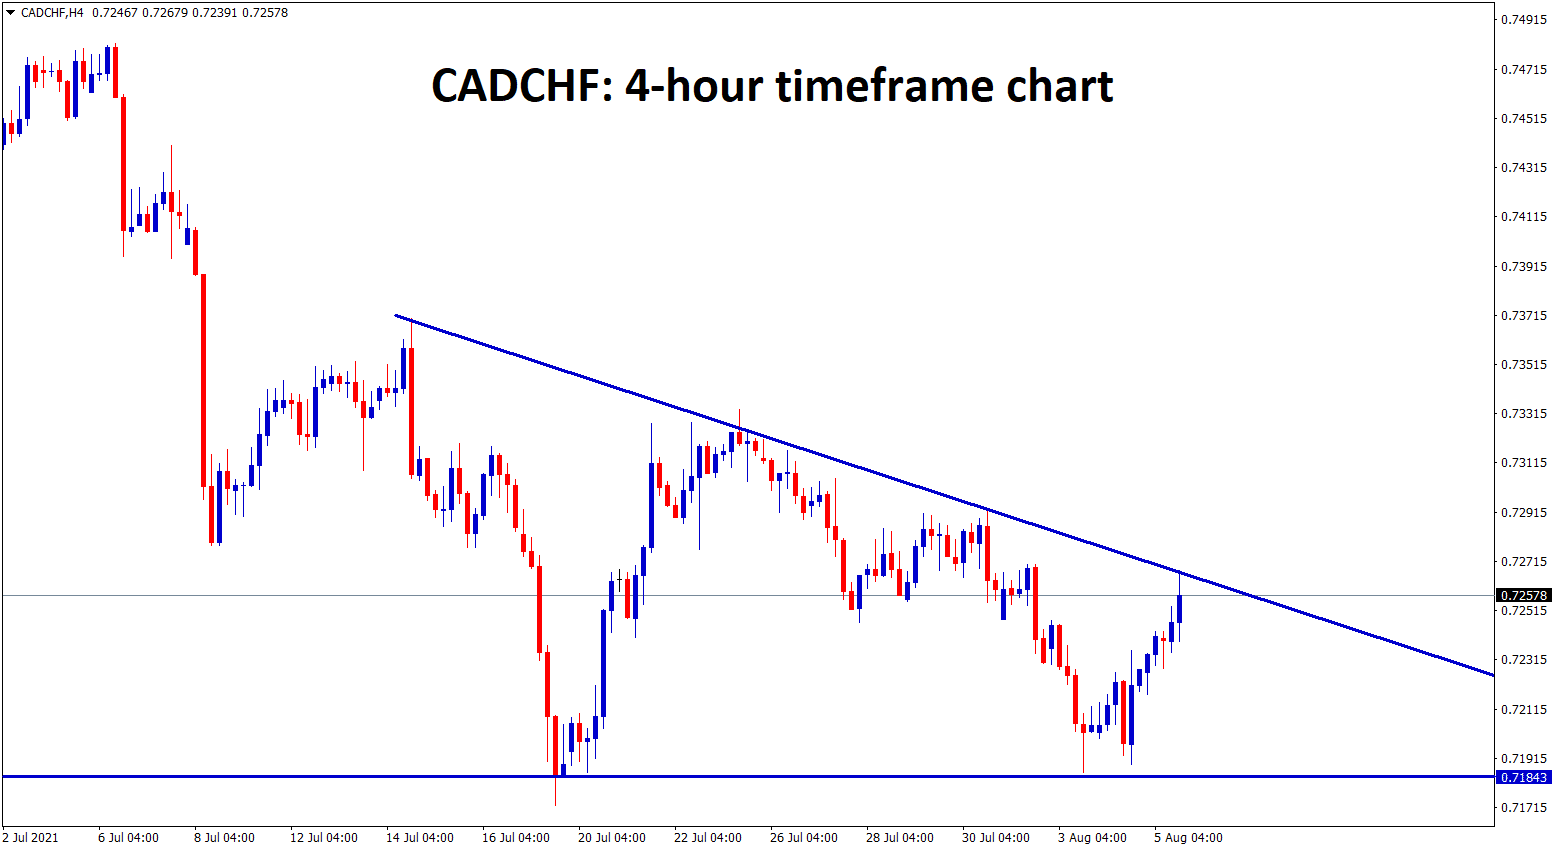 CADCHF formed a descending triangle pattern